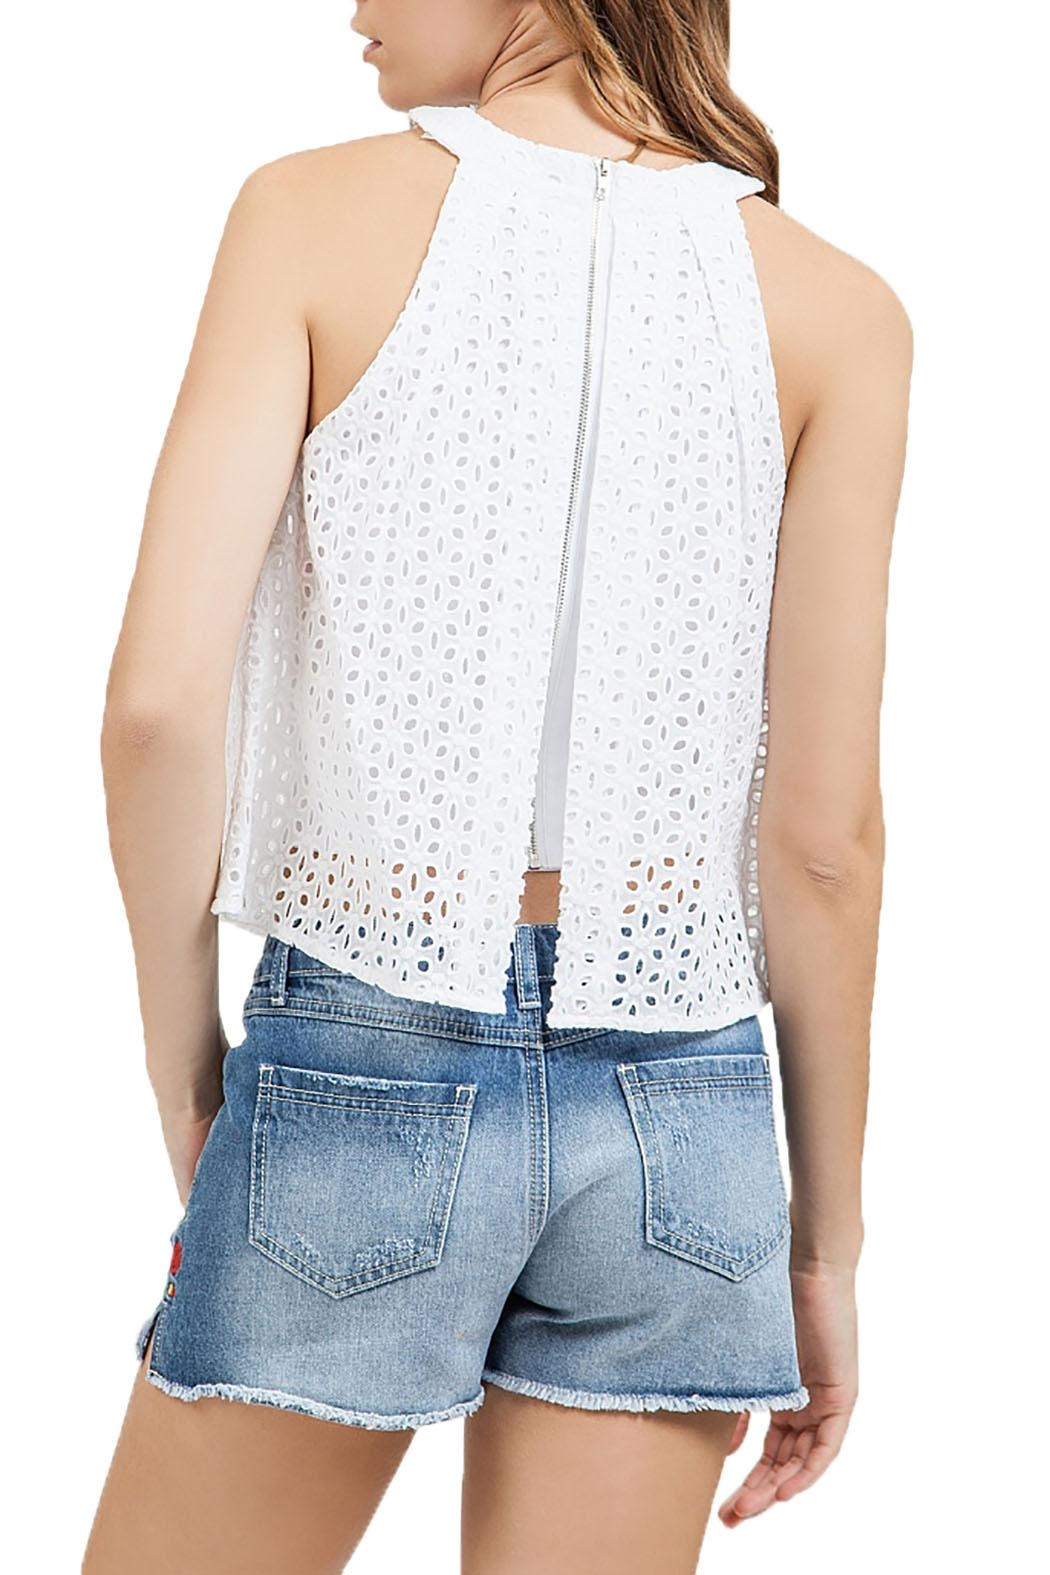 Blu Pepper Eyelet Halter Top - Side Cropped Image